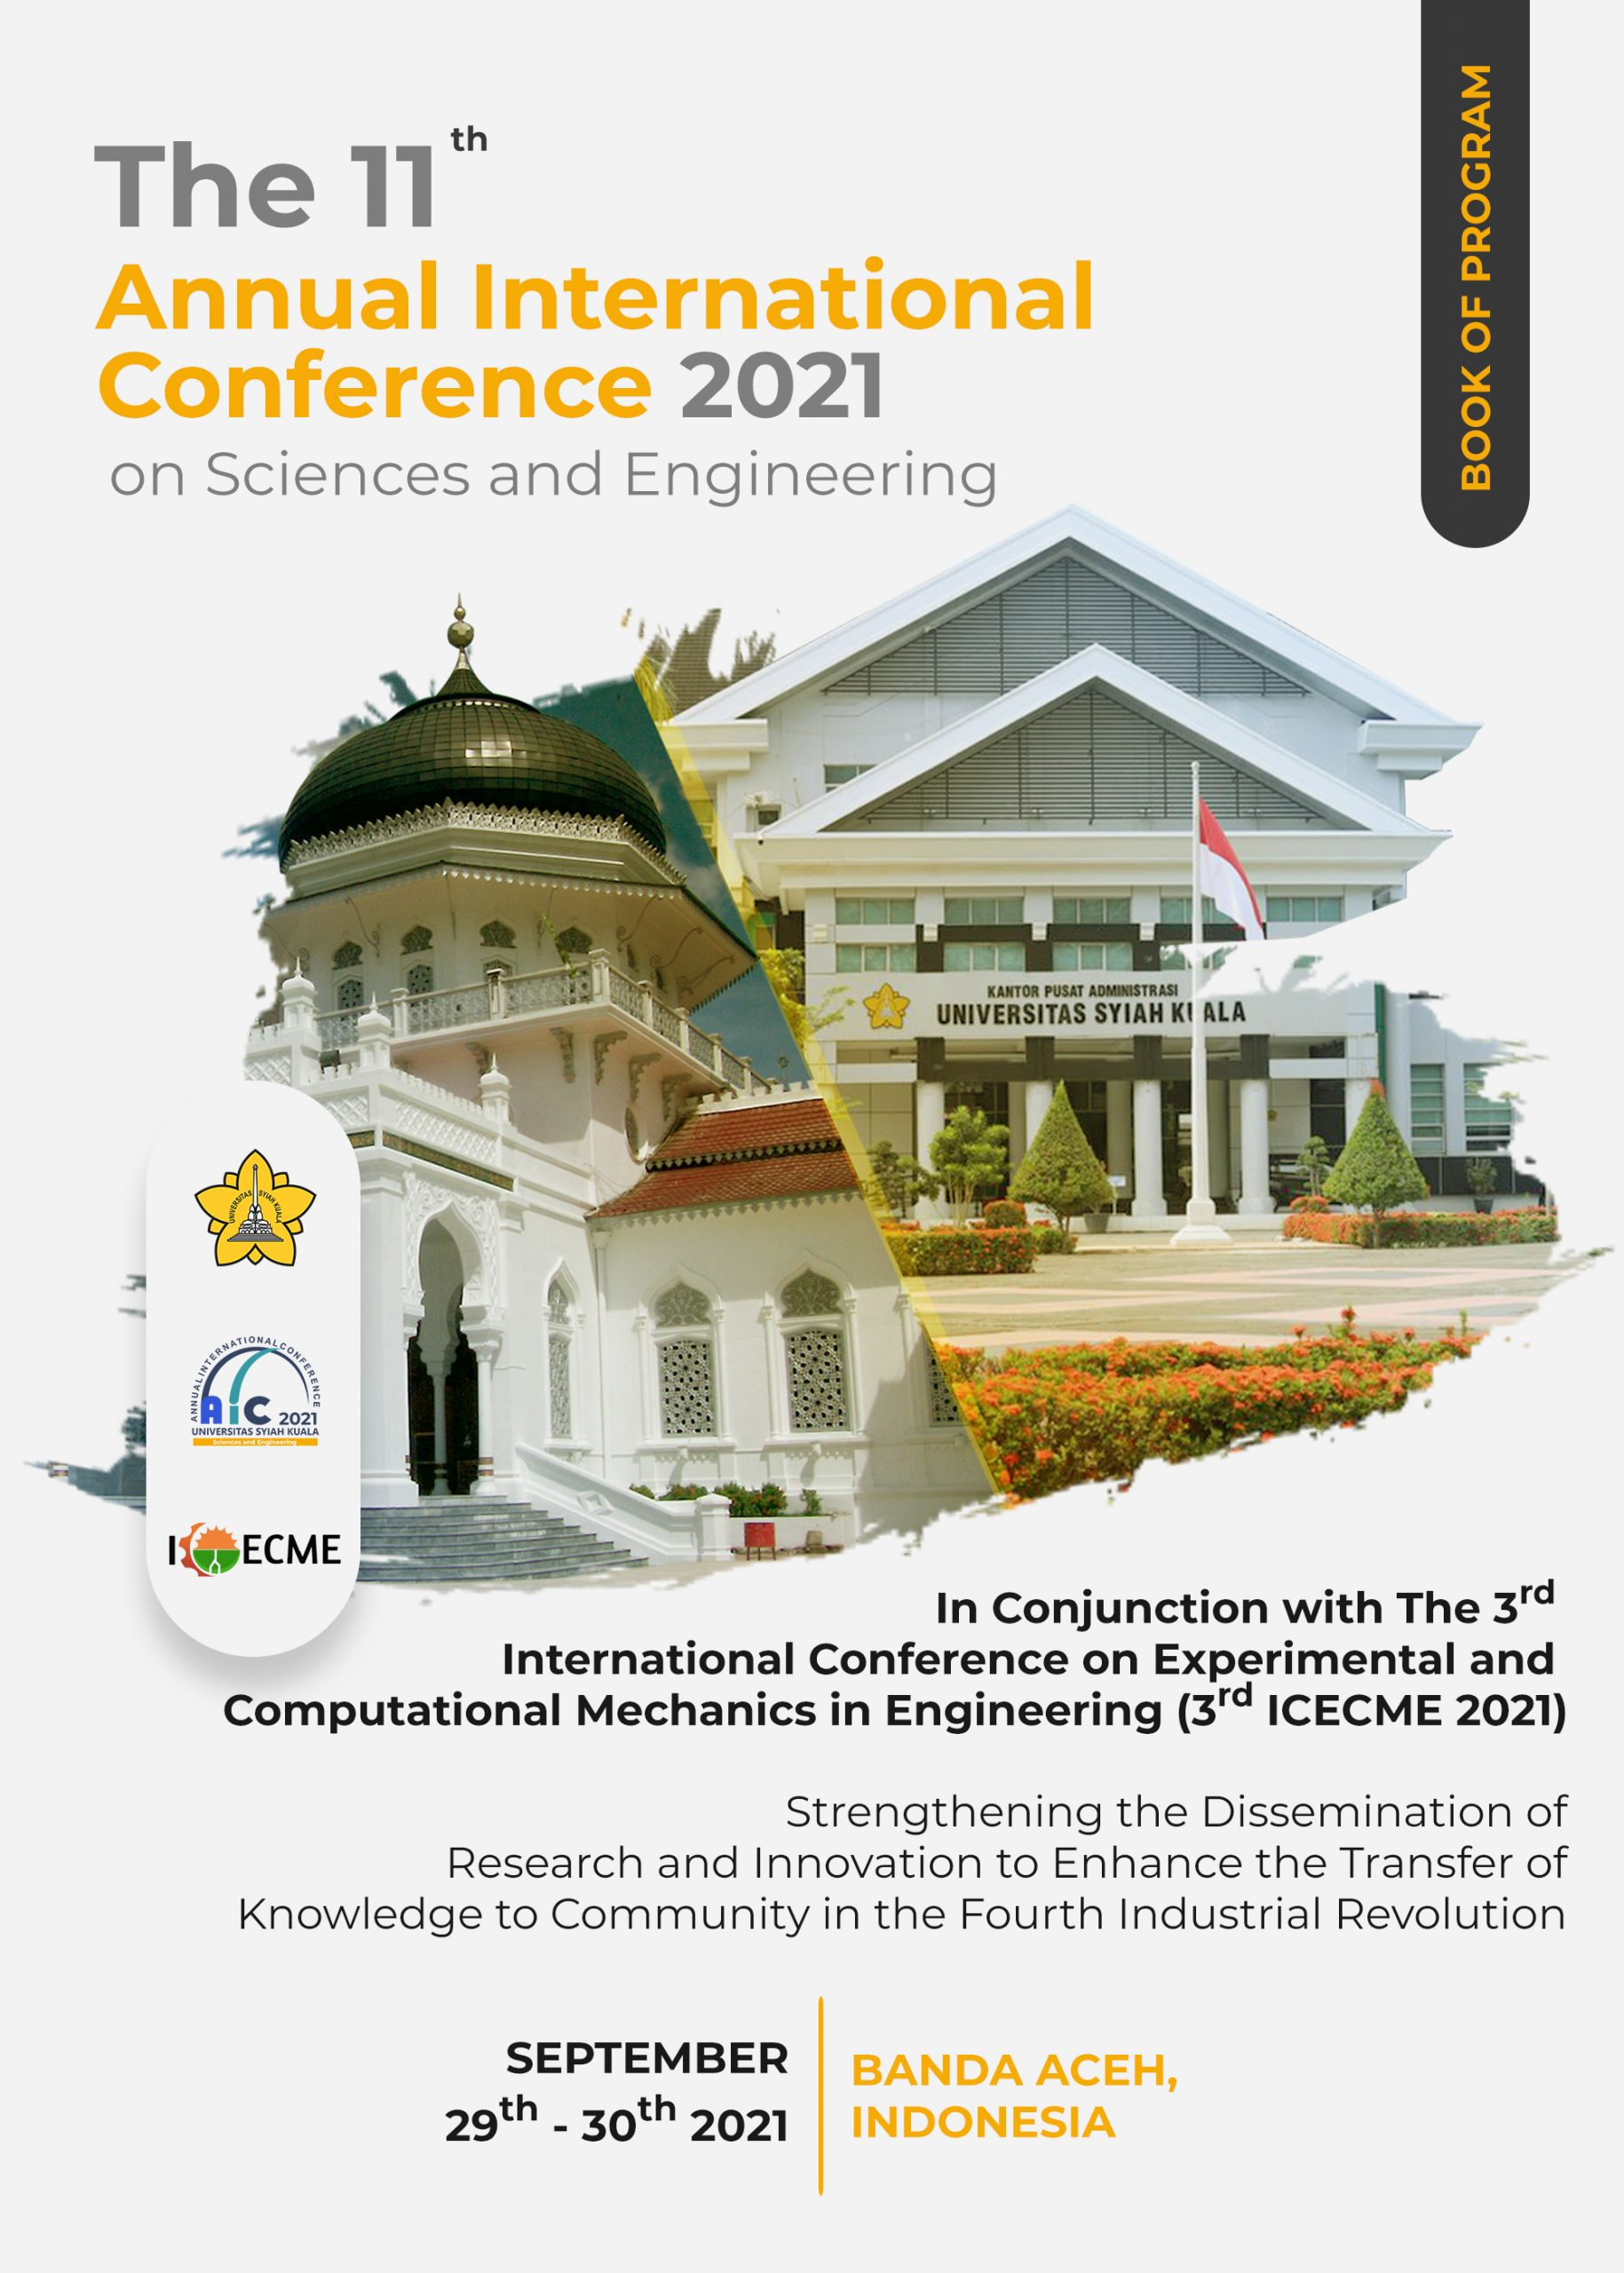 Download tentative schedules, oral presenter guidelines and abstracts from keynote speakers, invited speakers, and all presenters can be seen on Book of Programme below: